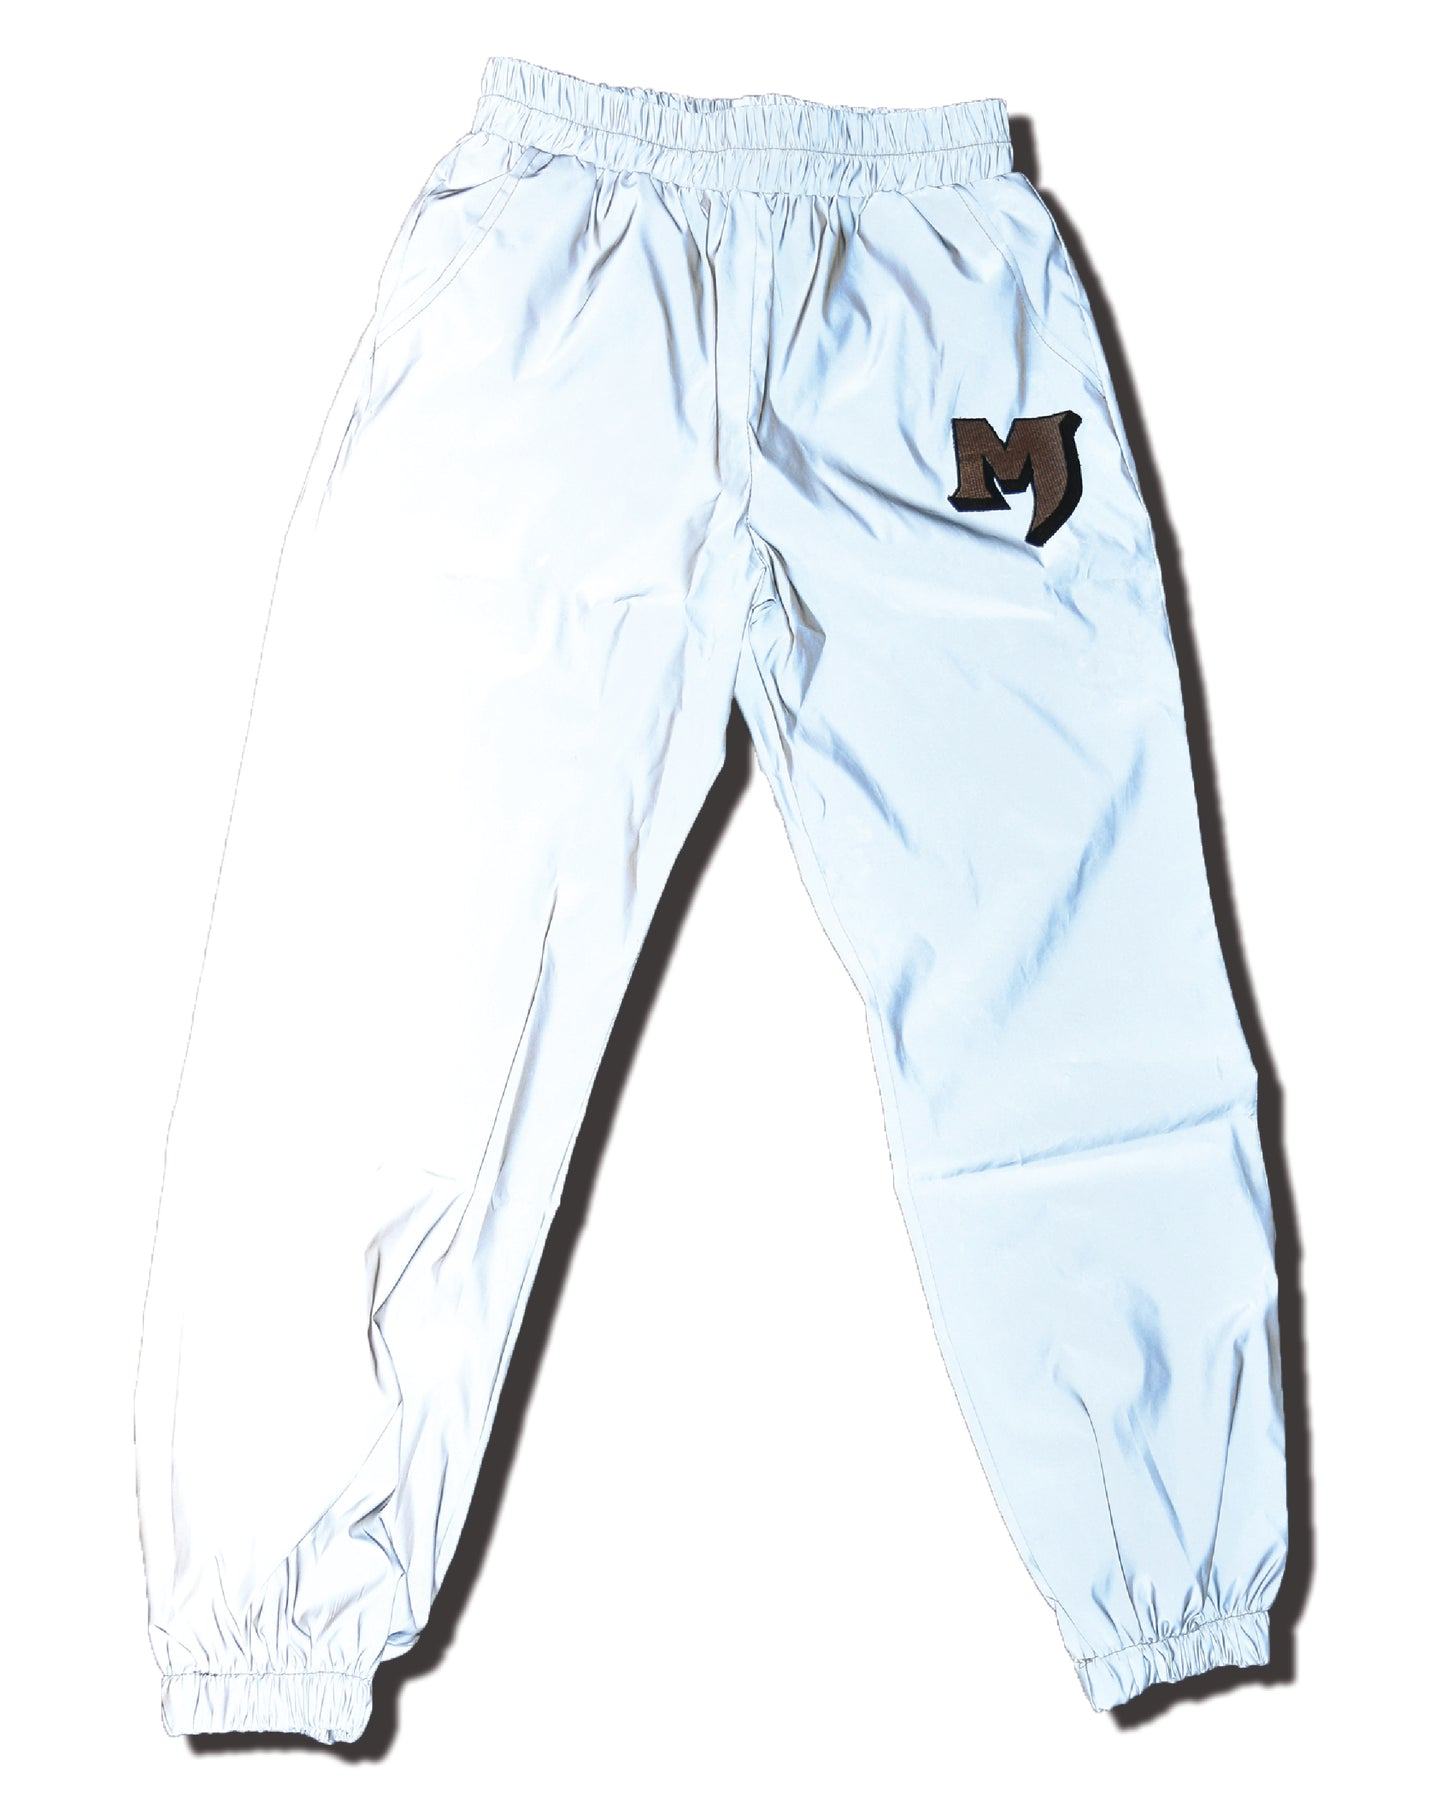 MARE MARE GREY REFLECTIVE PANTS - WOMEN'S streetwear